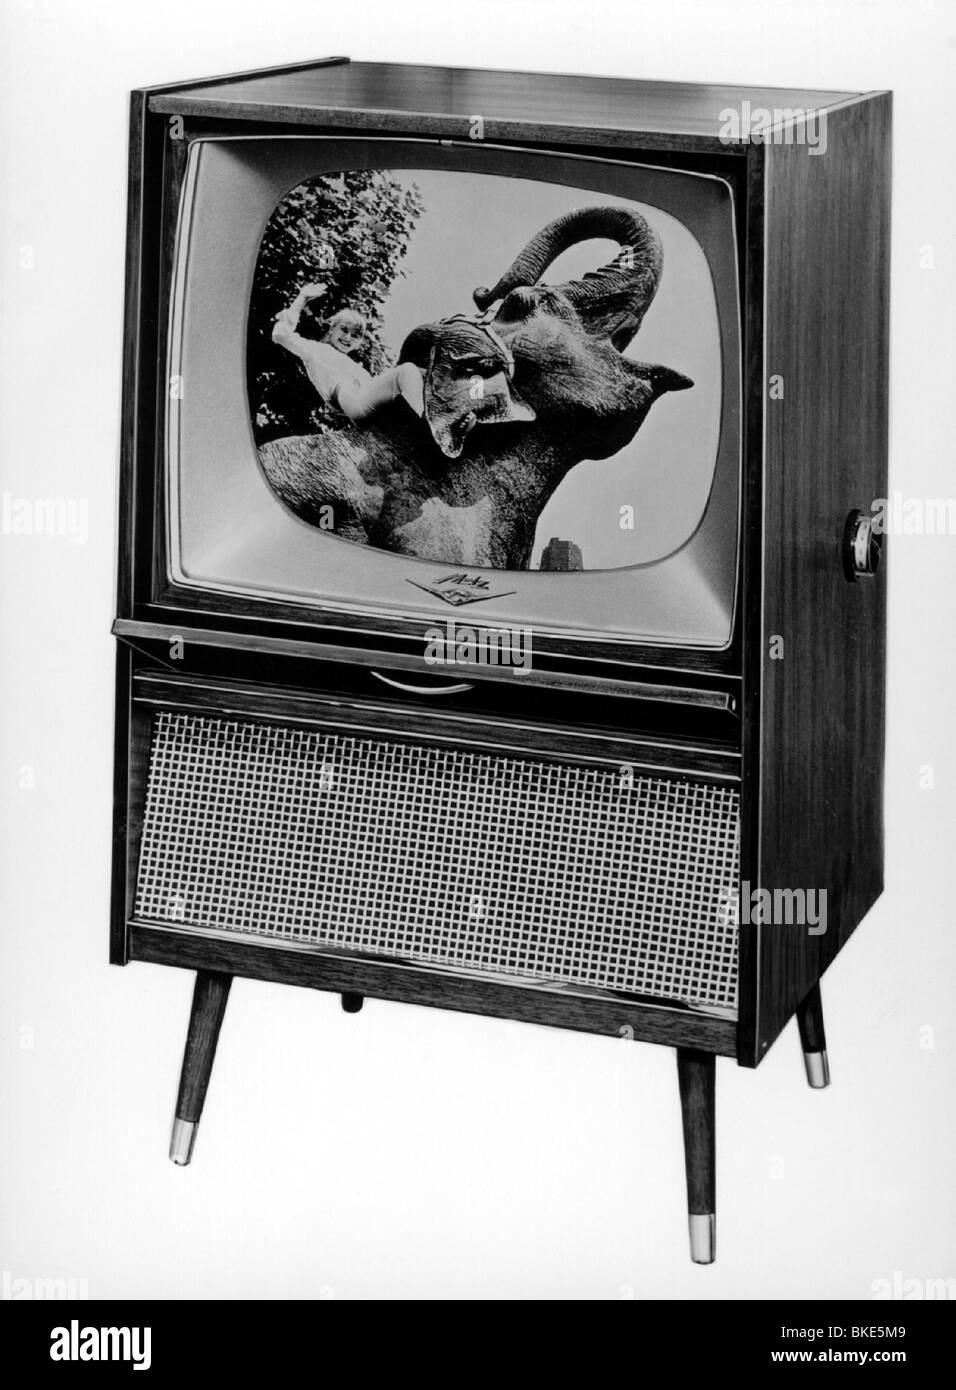 Broadcast Television Television Set 1960s 60s 20th